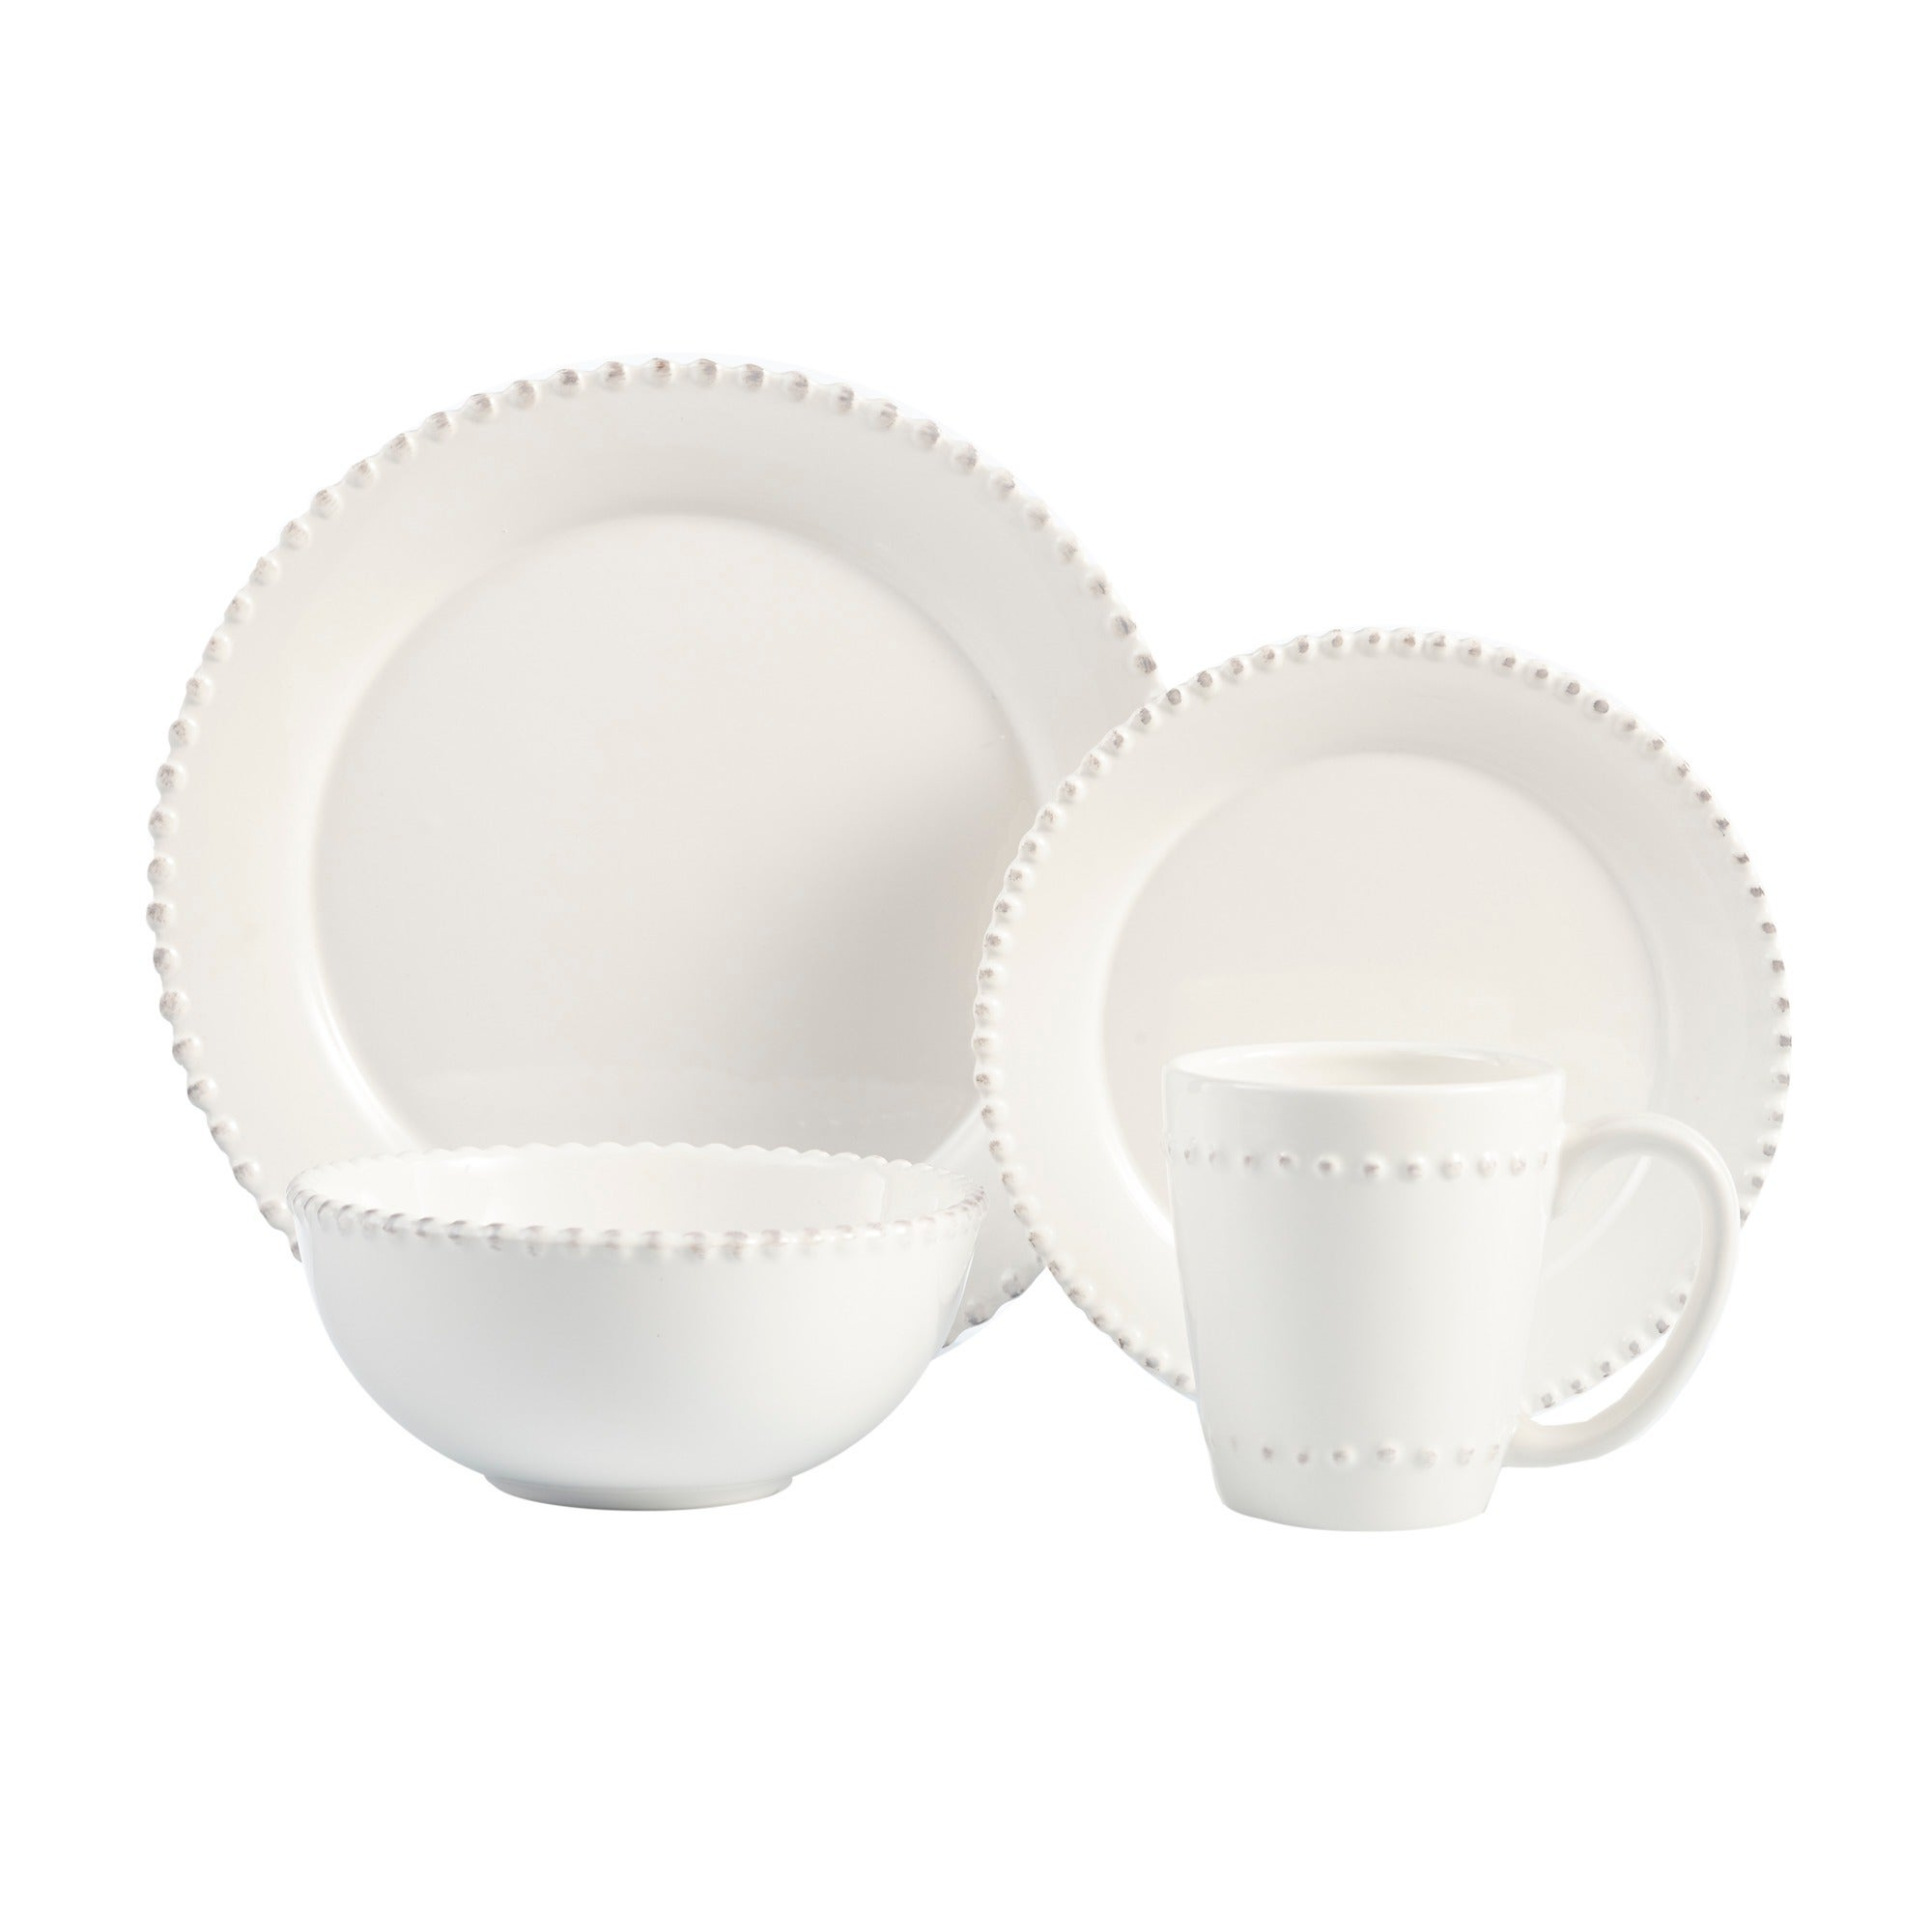 American Atelier Bianca Bead 16-piece Dinnerware Set - Free Shipping Today - Overstock - 13025720  sc 1 st  Overstock.com & American Atelier Bianca Bead 16-piece Dinnerware Set - Free Shipping ...